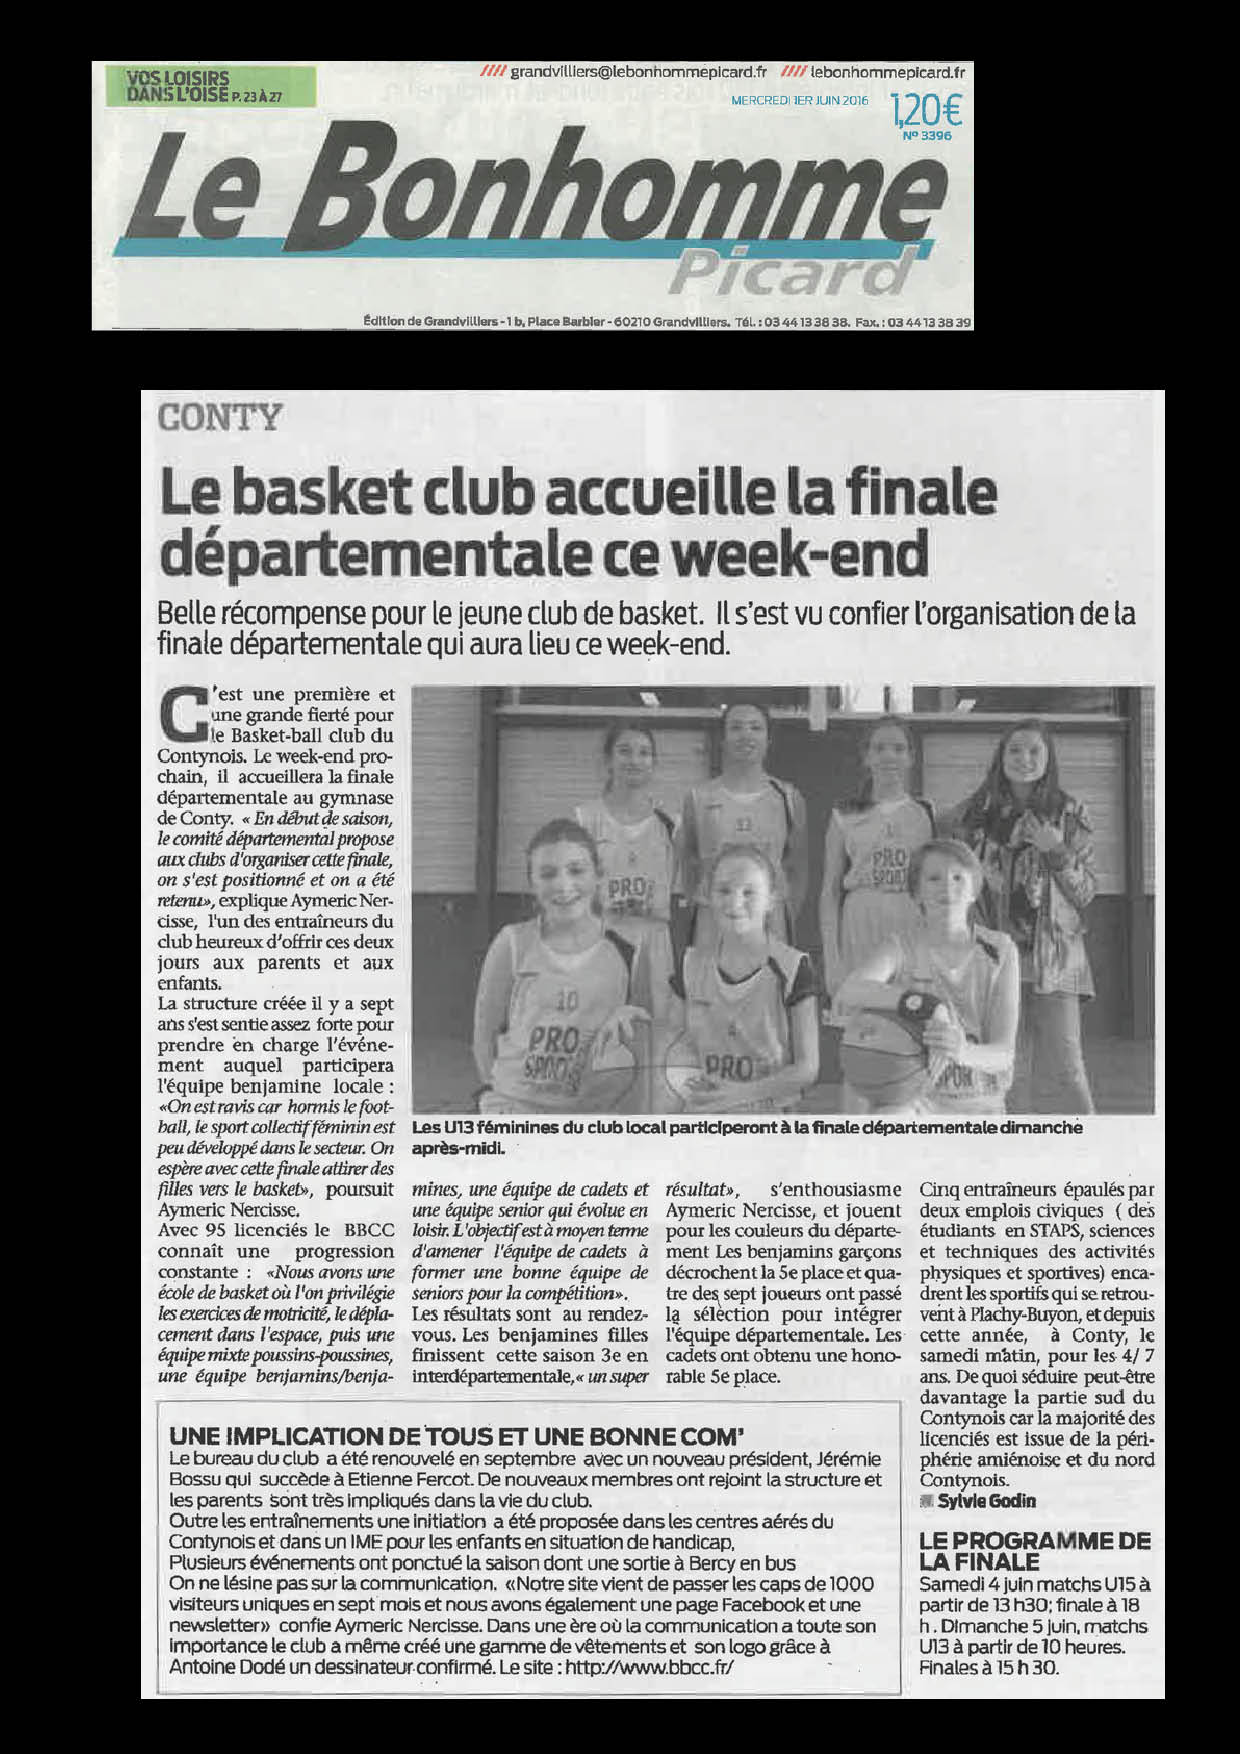 Article Bonhomme Picard - 01.06.16